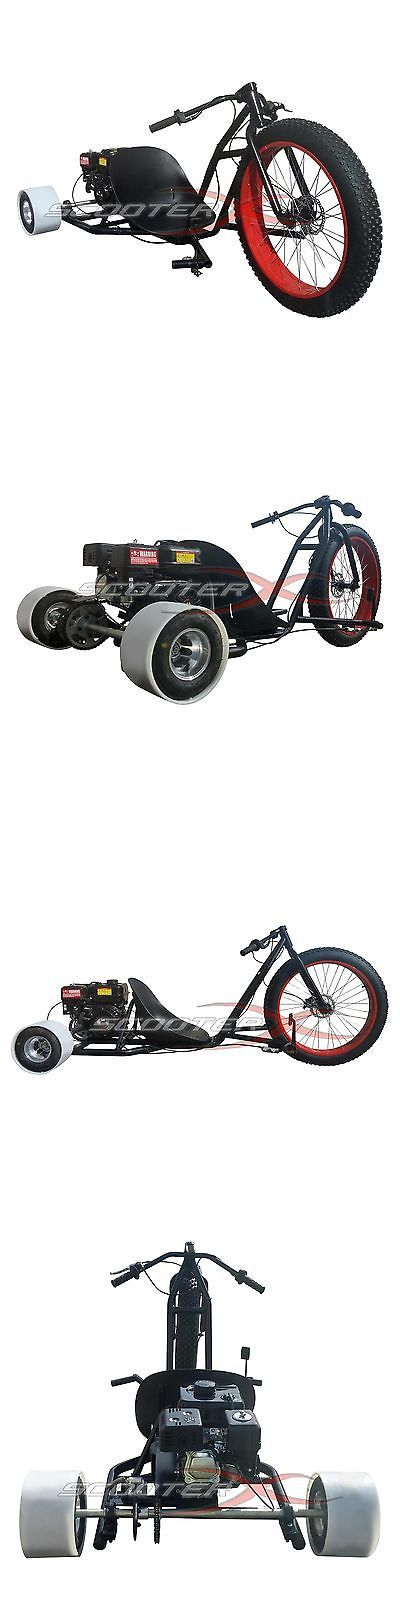 Gas Scooters 75211: Red Scooter X Go Kart 6.5Hp Engine 3 Wheeler Kart 26 Rim Drift Trike -> BUY IT NOW ONLY: $949 on eBay!